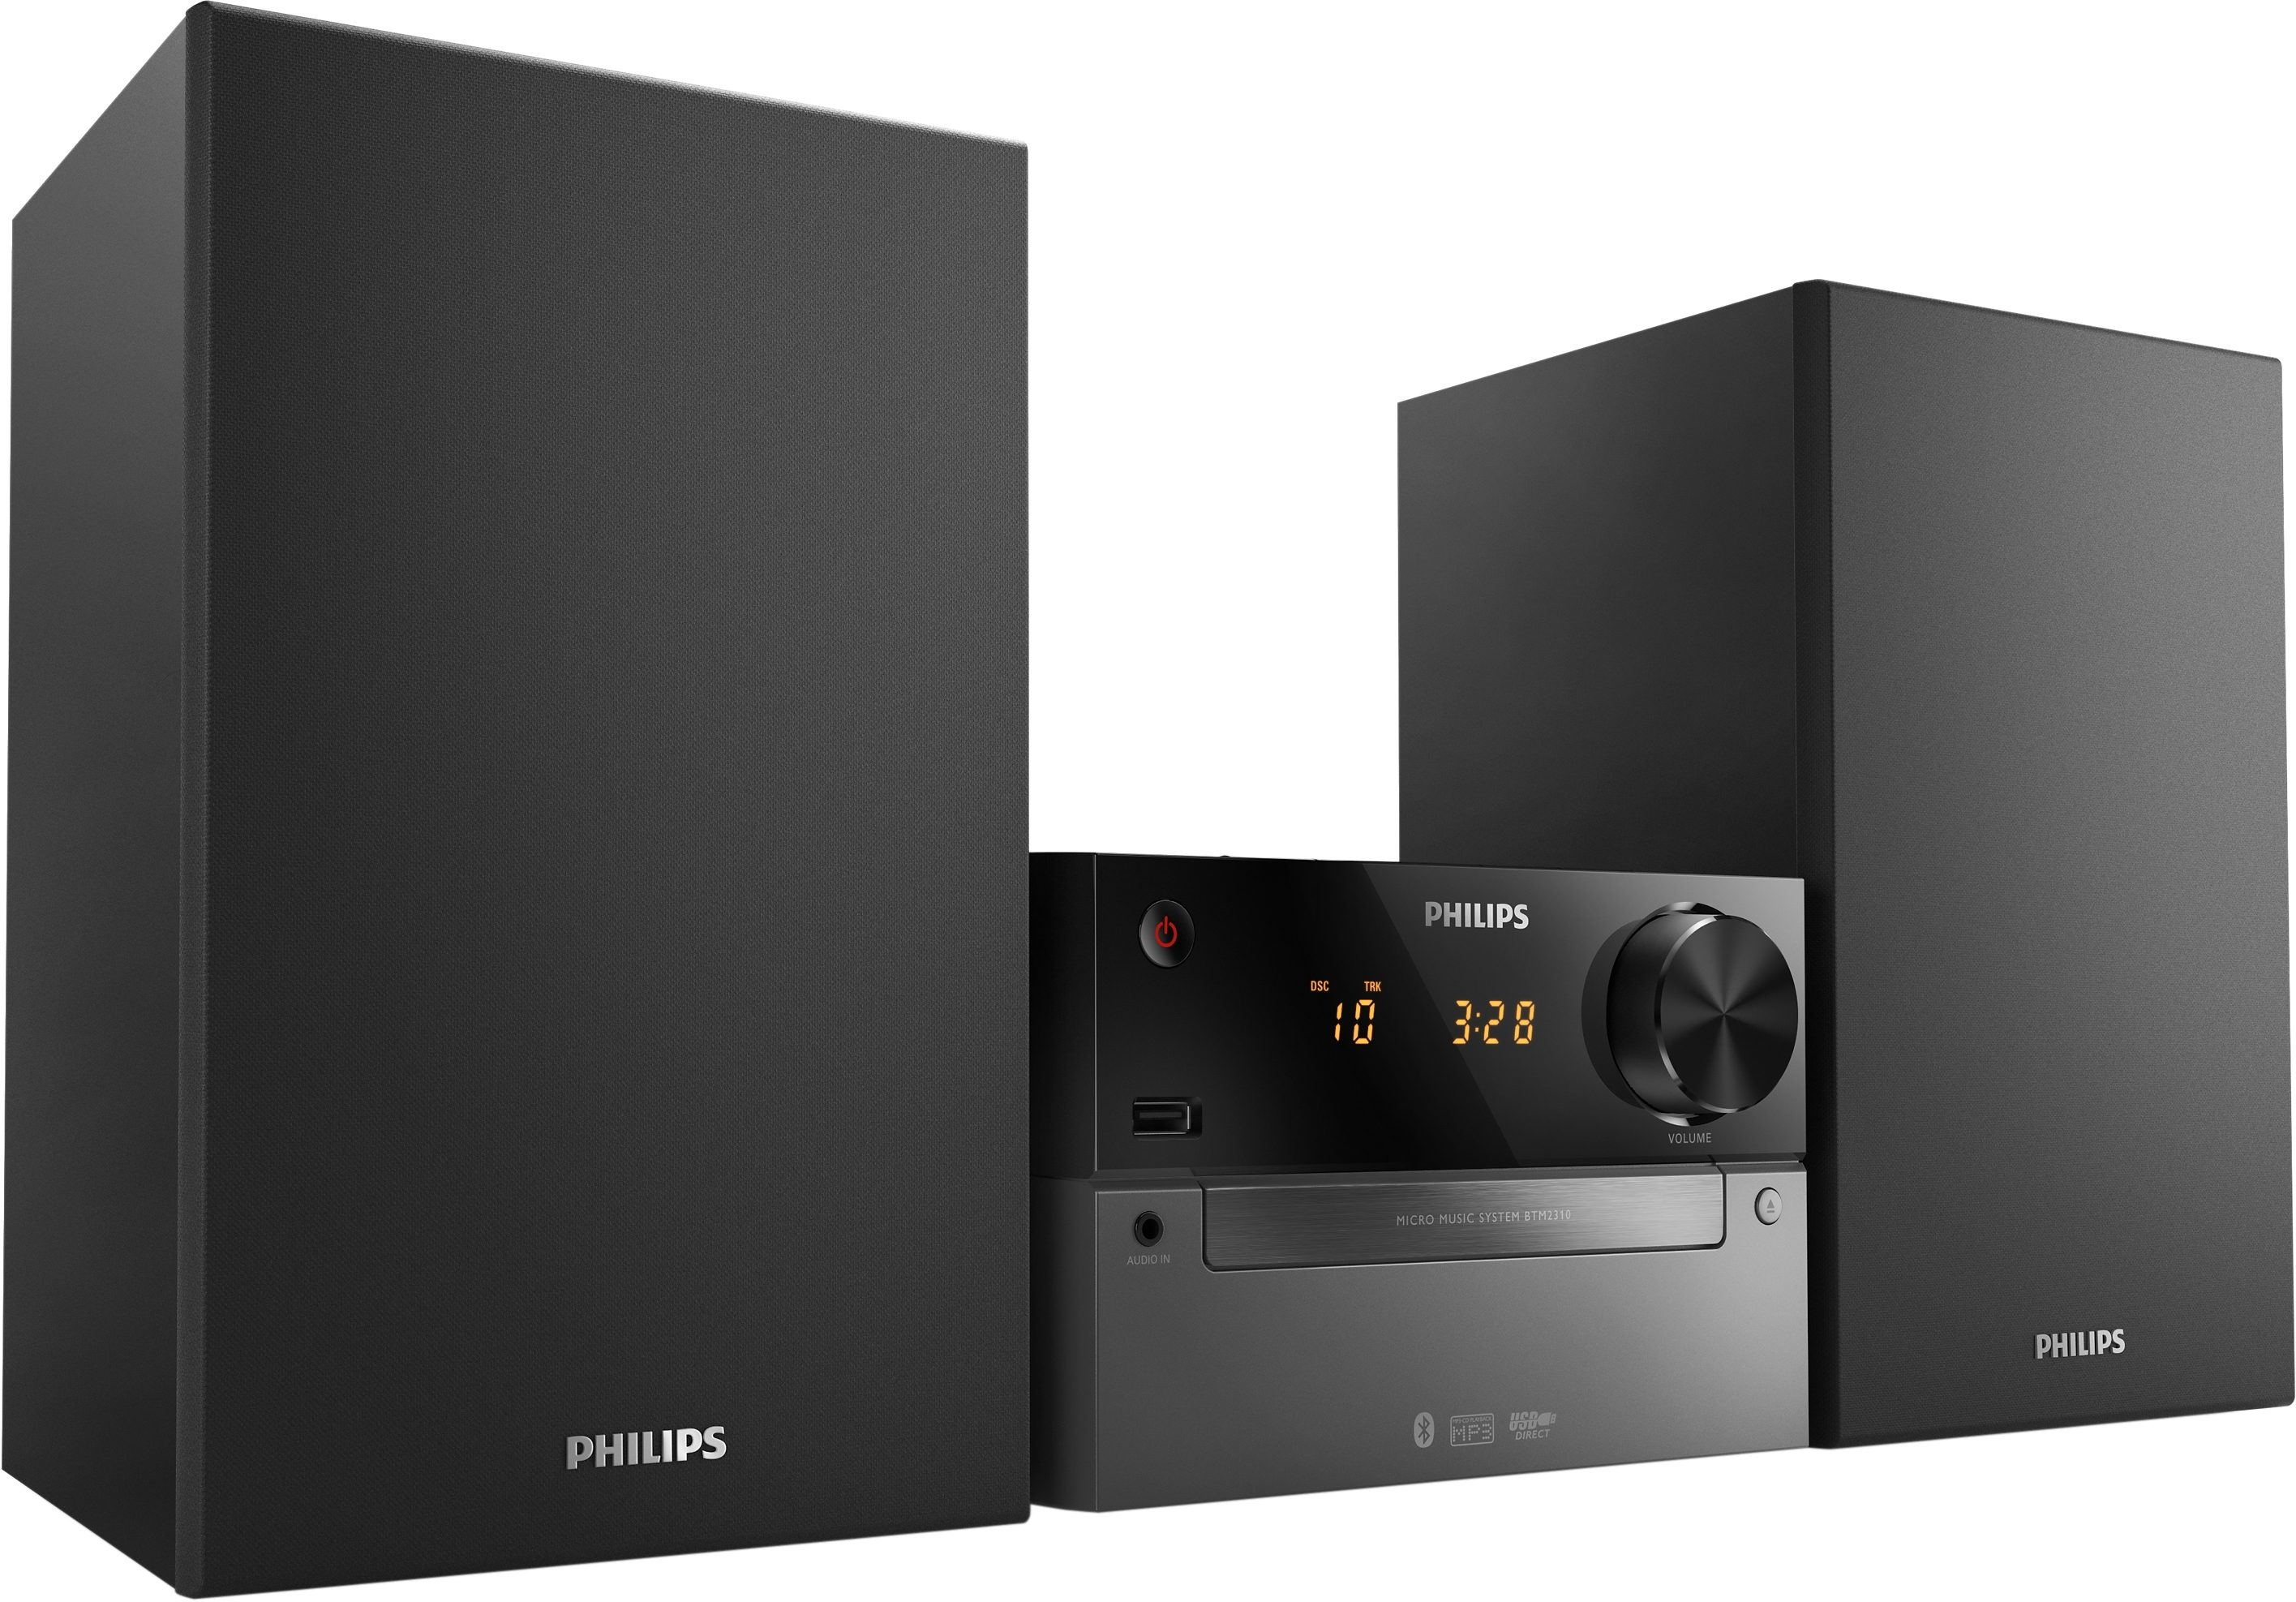 Philips MCB2305 Minianlage, Digitalradio (DAB+), RDS, 1x USB